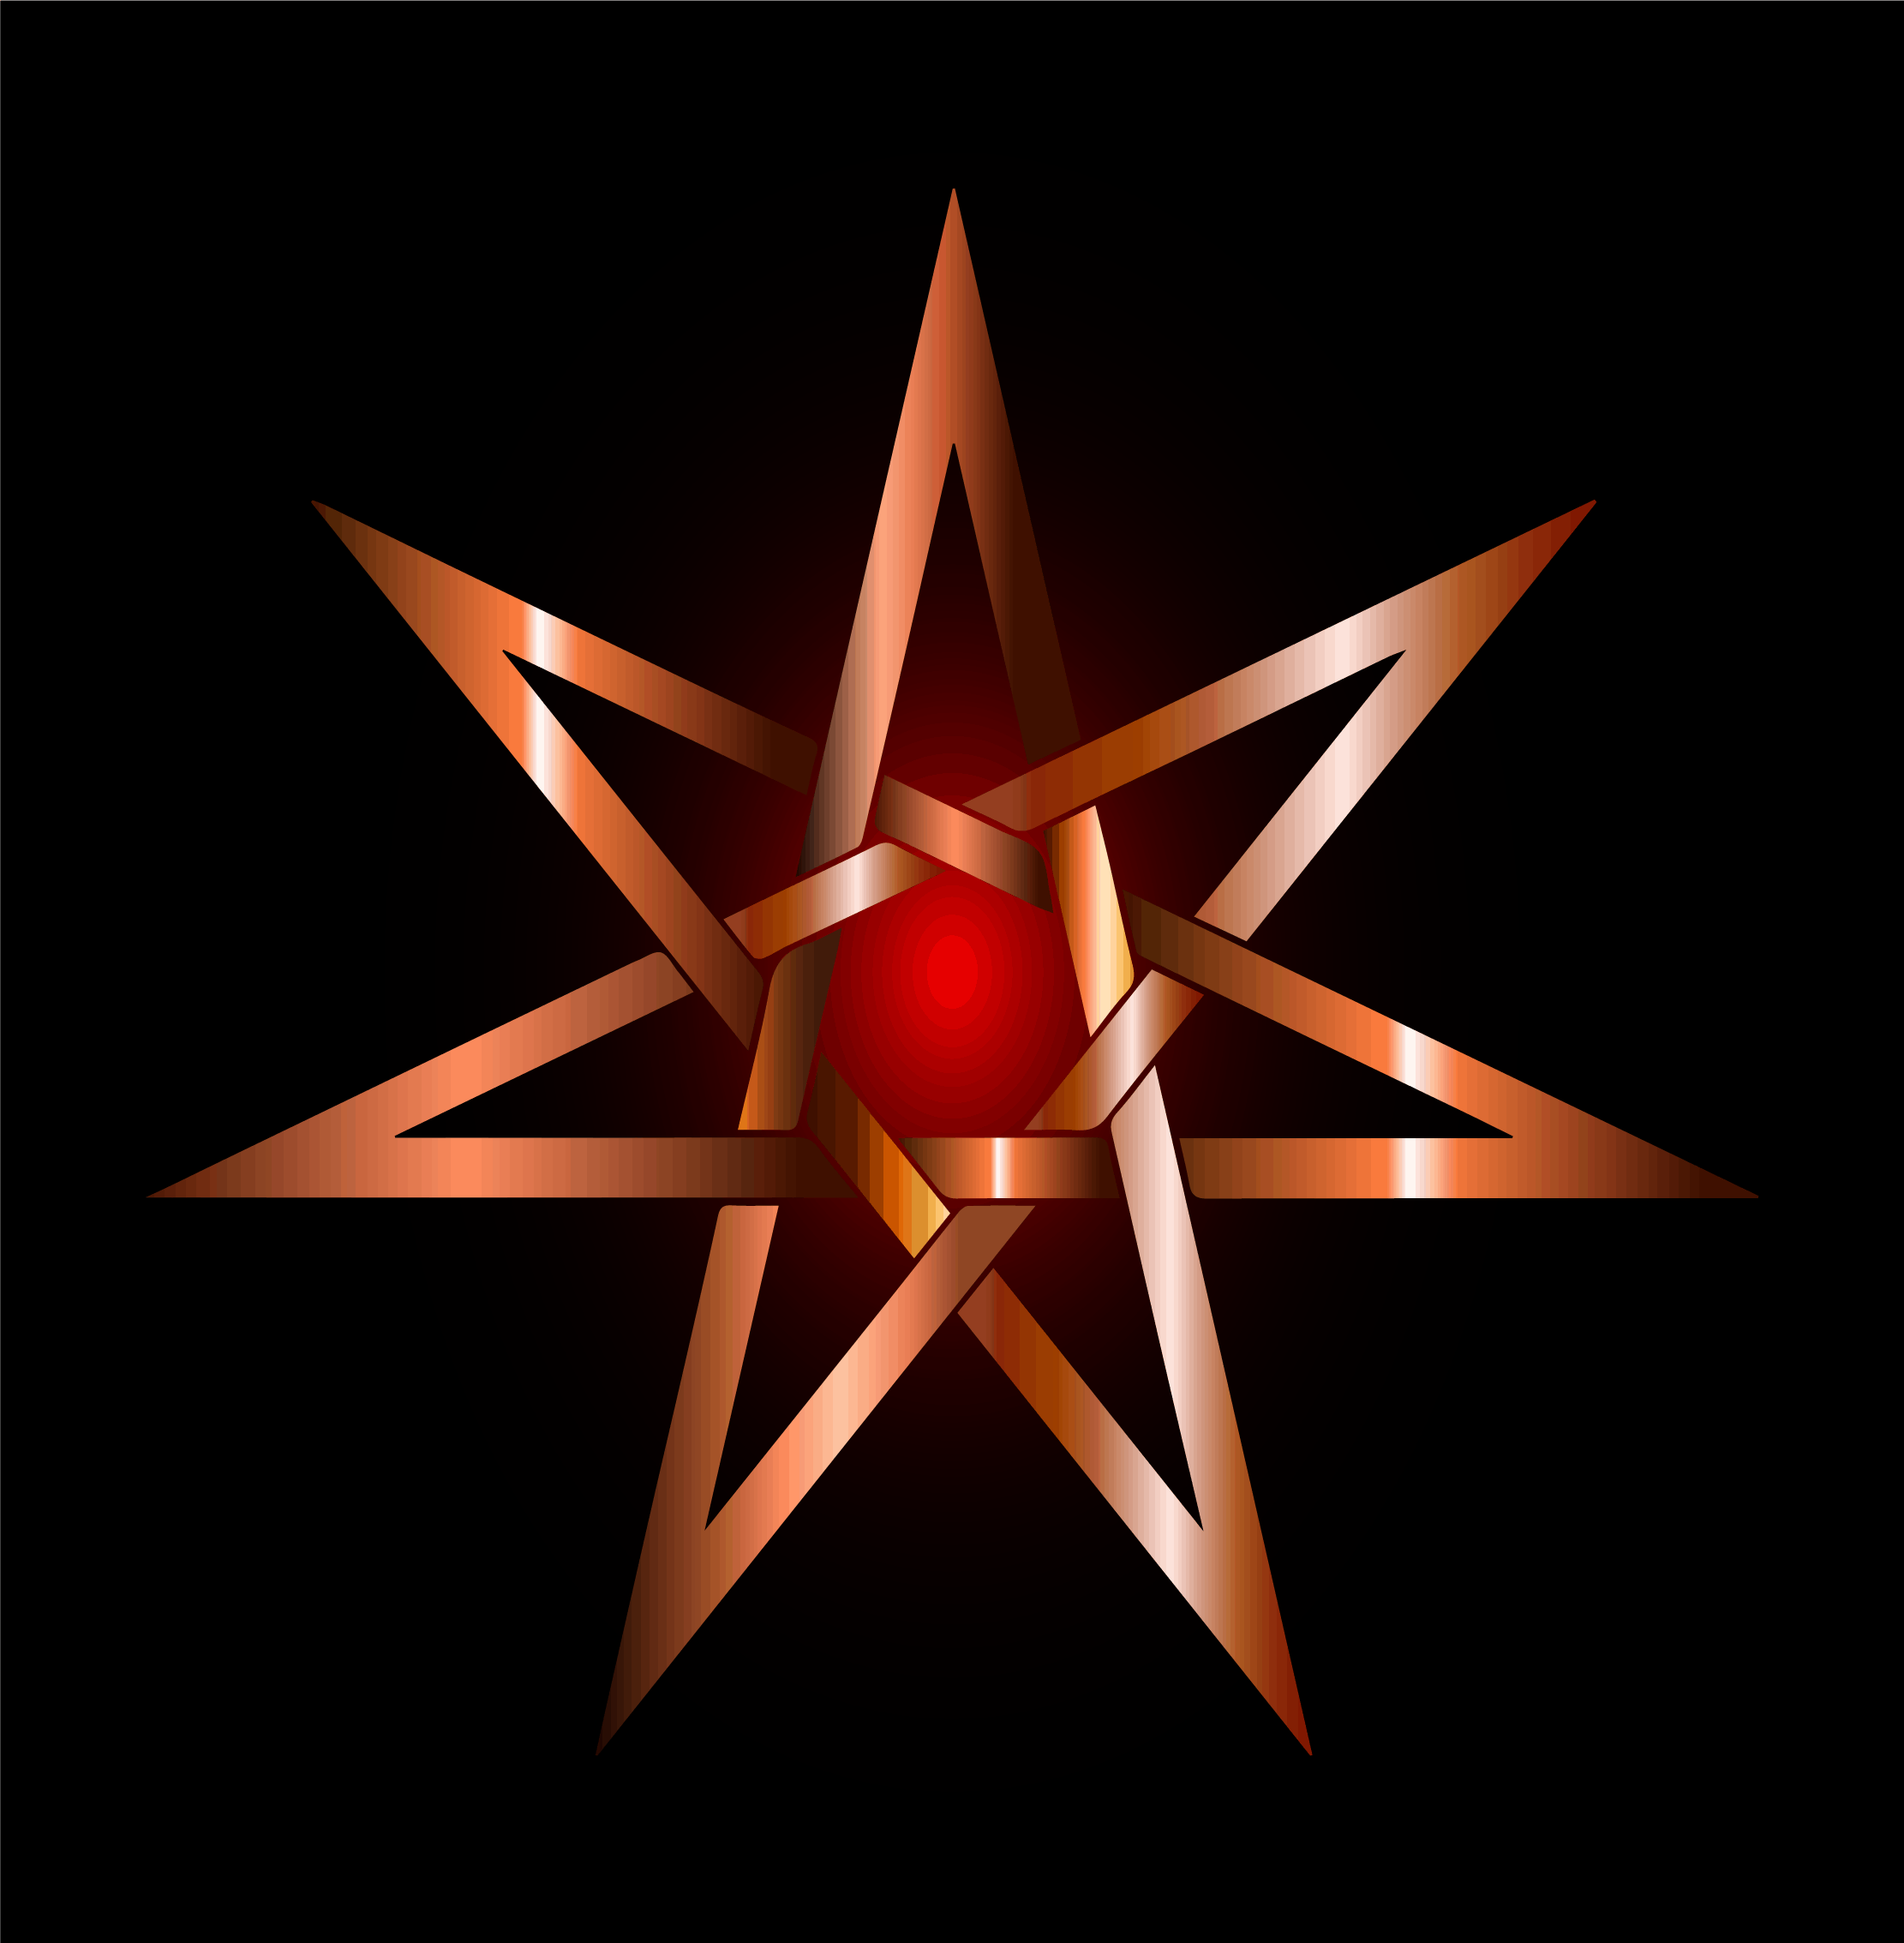 7-pointed Star Meaning, The Symbol Also Known As Heptagram/Septagram, Elven Star